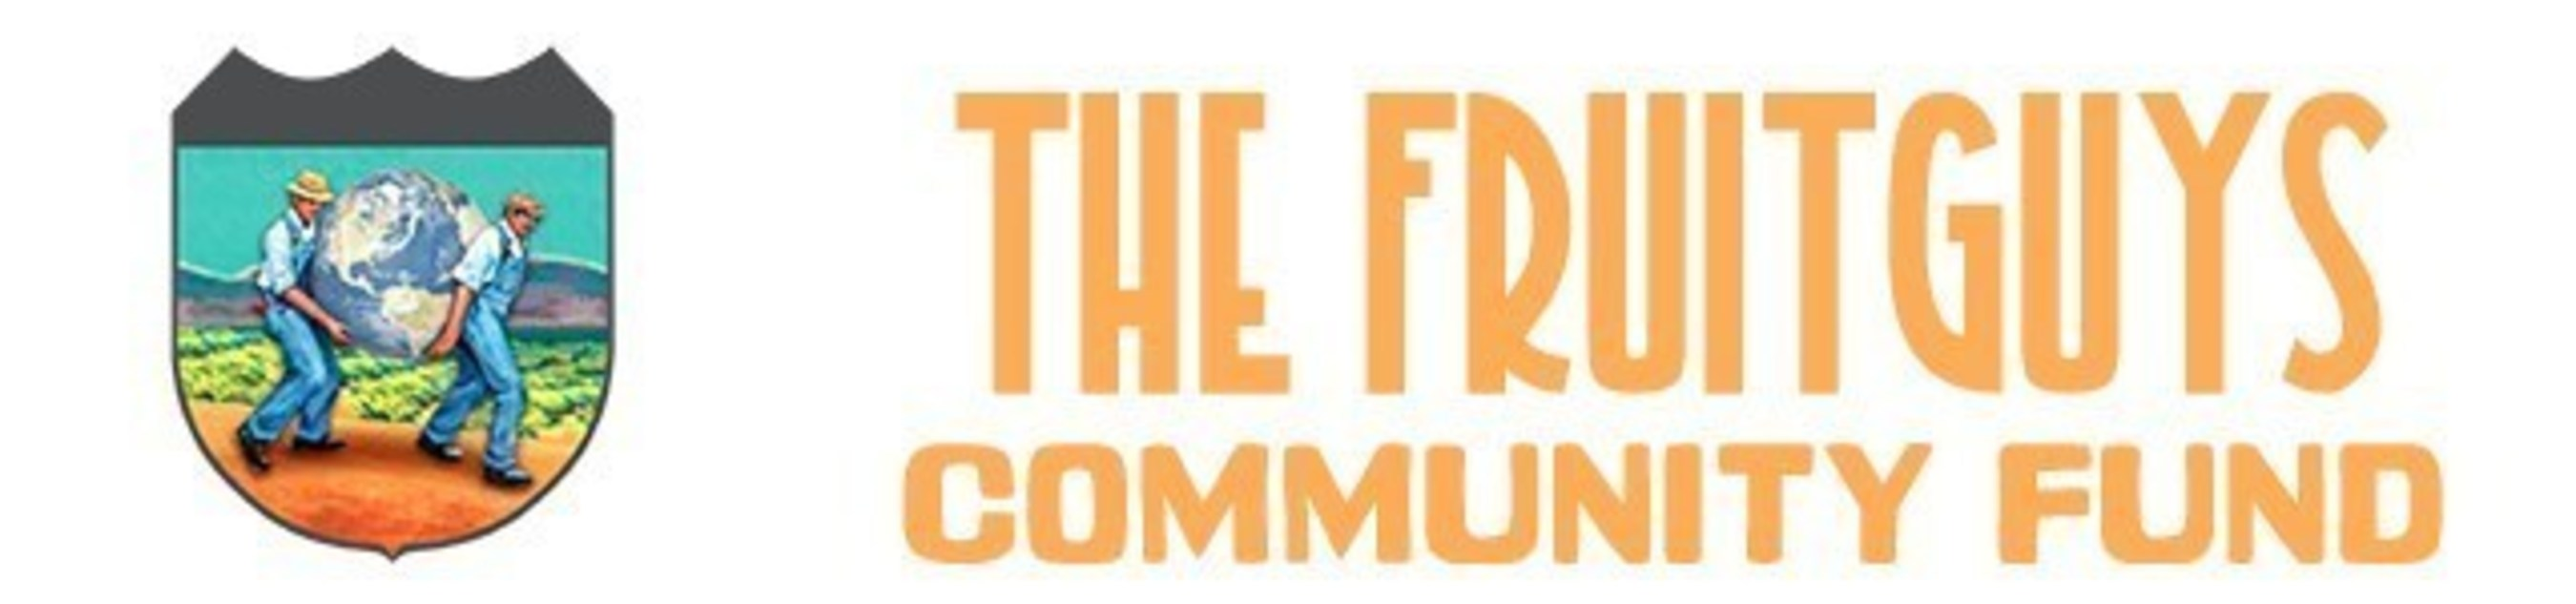 The FruitGuys Community Fund Awards $40,000 In Grants